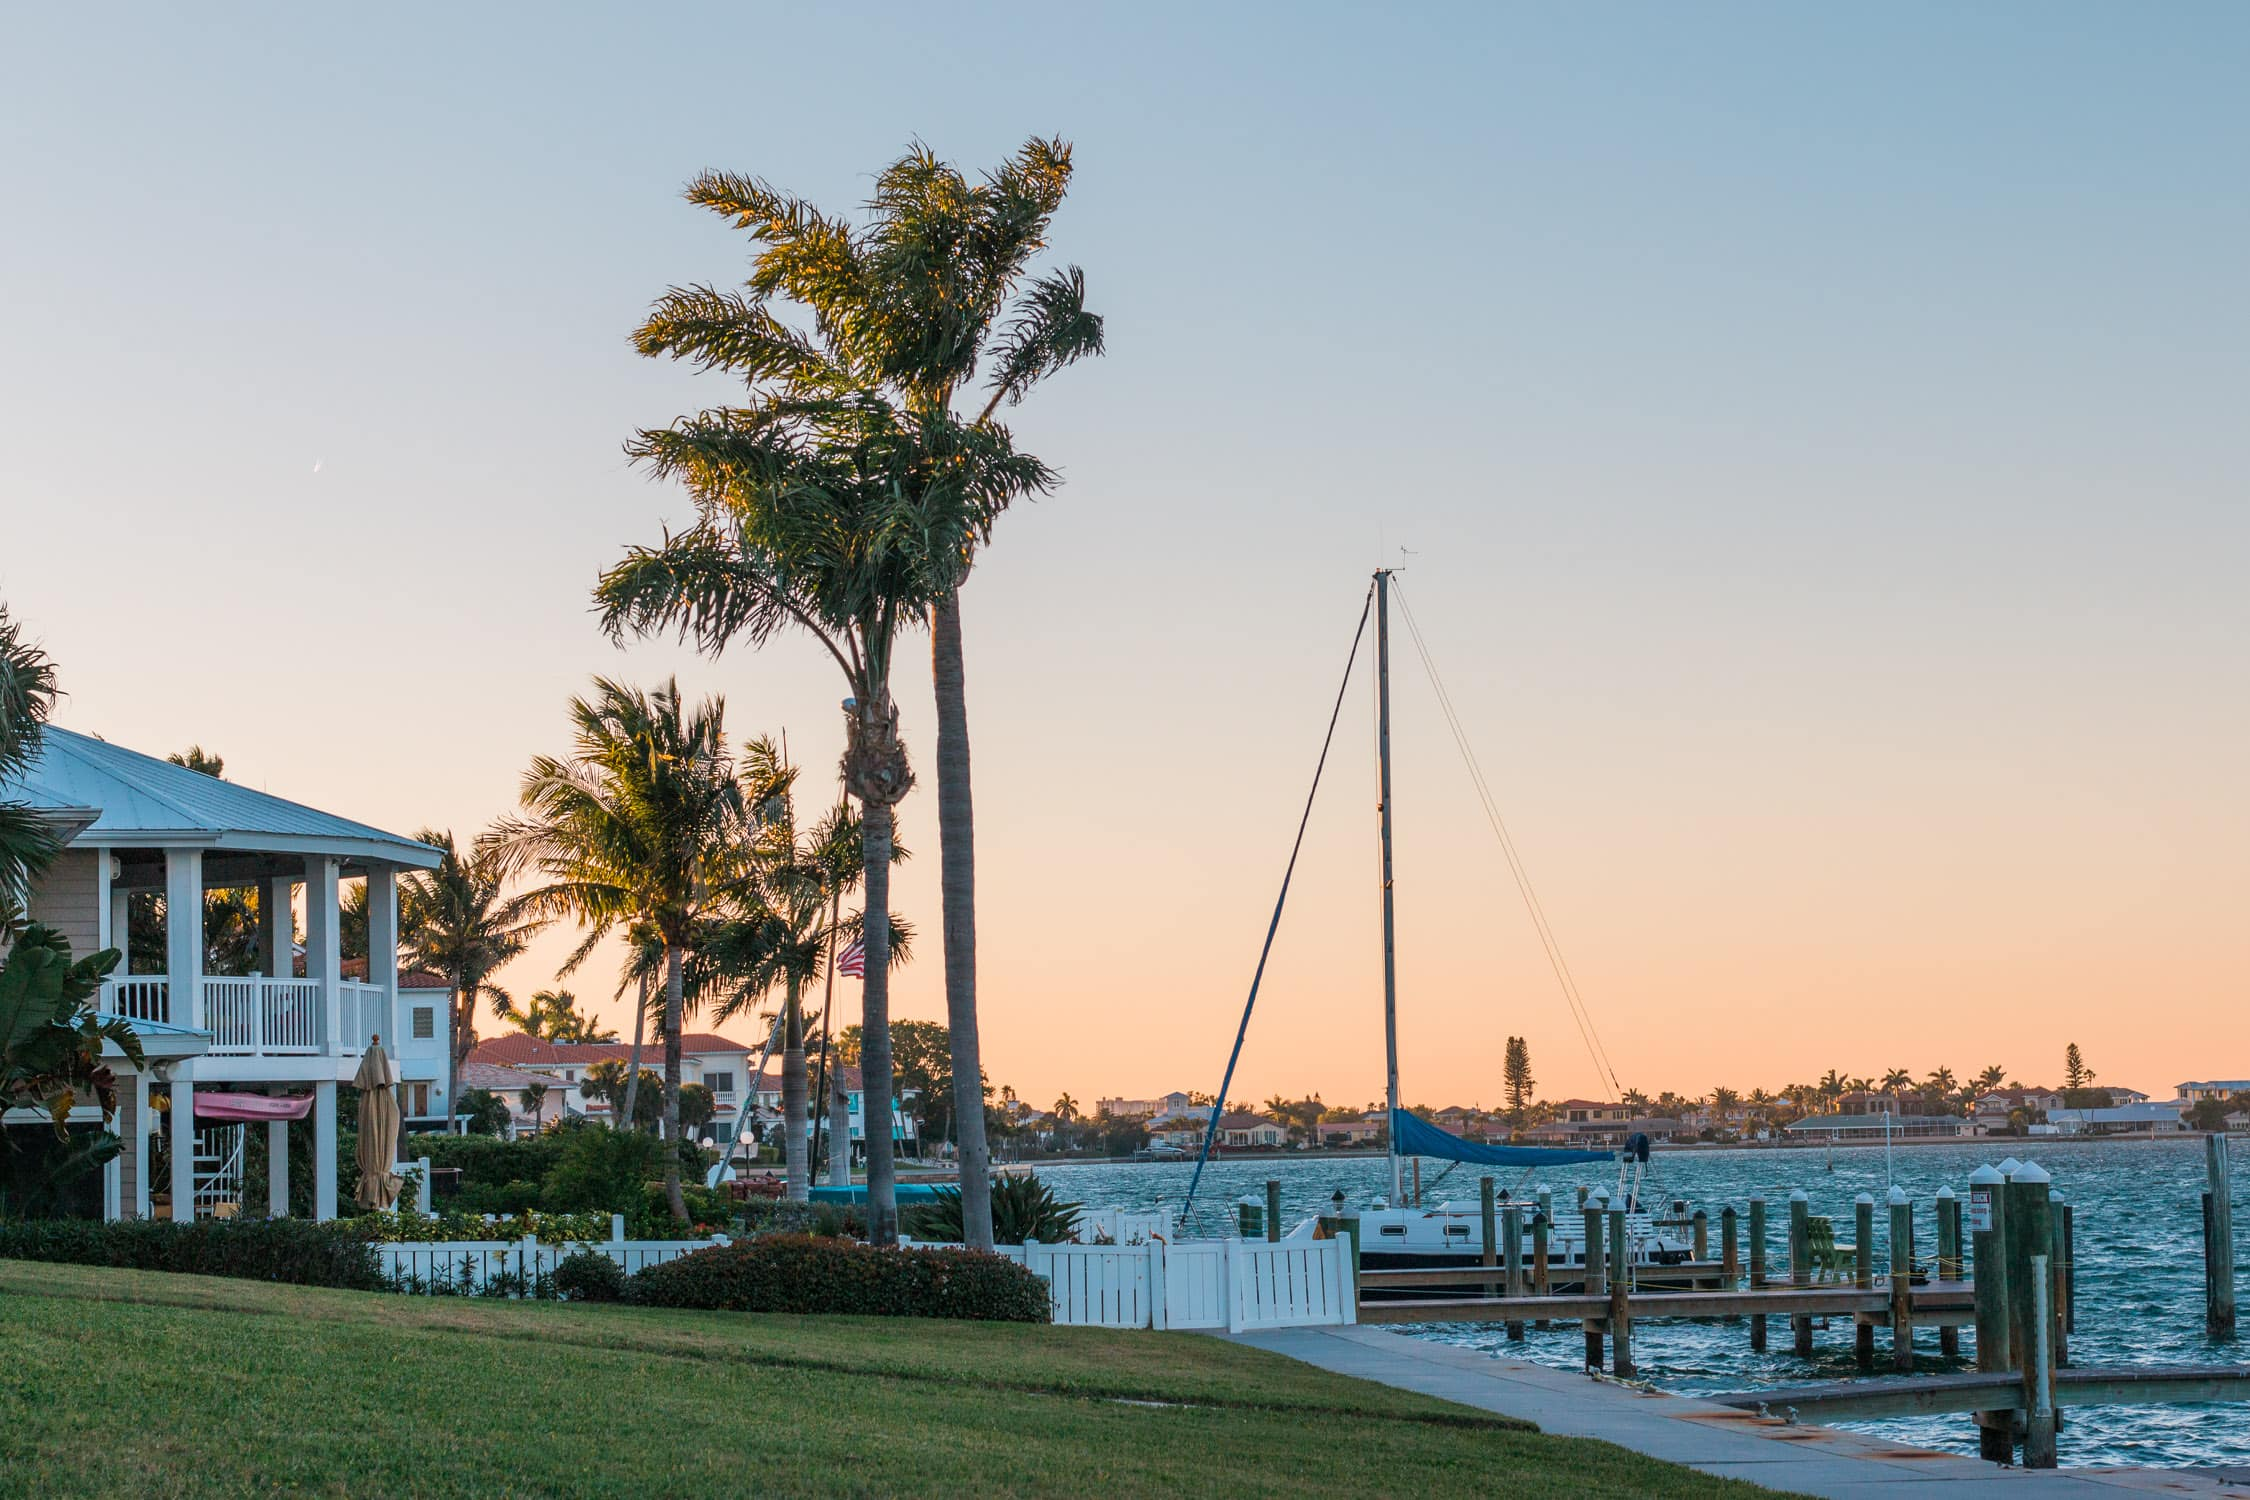 How to plan a romantic weekend getaway in Longboat Key, Florida, including a relaxing stay at The Resort at Longboat Key Club! #LoveFL sponsored by @visitflorida | sunset dinner on the water at Dry Dock Waterfront Grill | Florida travel tips, beach vacation, vacation ideas, vacation goals, travel blogger Ashley Brooke Nicholas, Florida travel guide, Longboat Key travel guide, Sarasota travel guide, beautiful beaches, boating, affordable travel, US travel, summer vacation, spring break ideas, romantic vacation